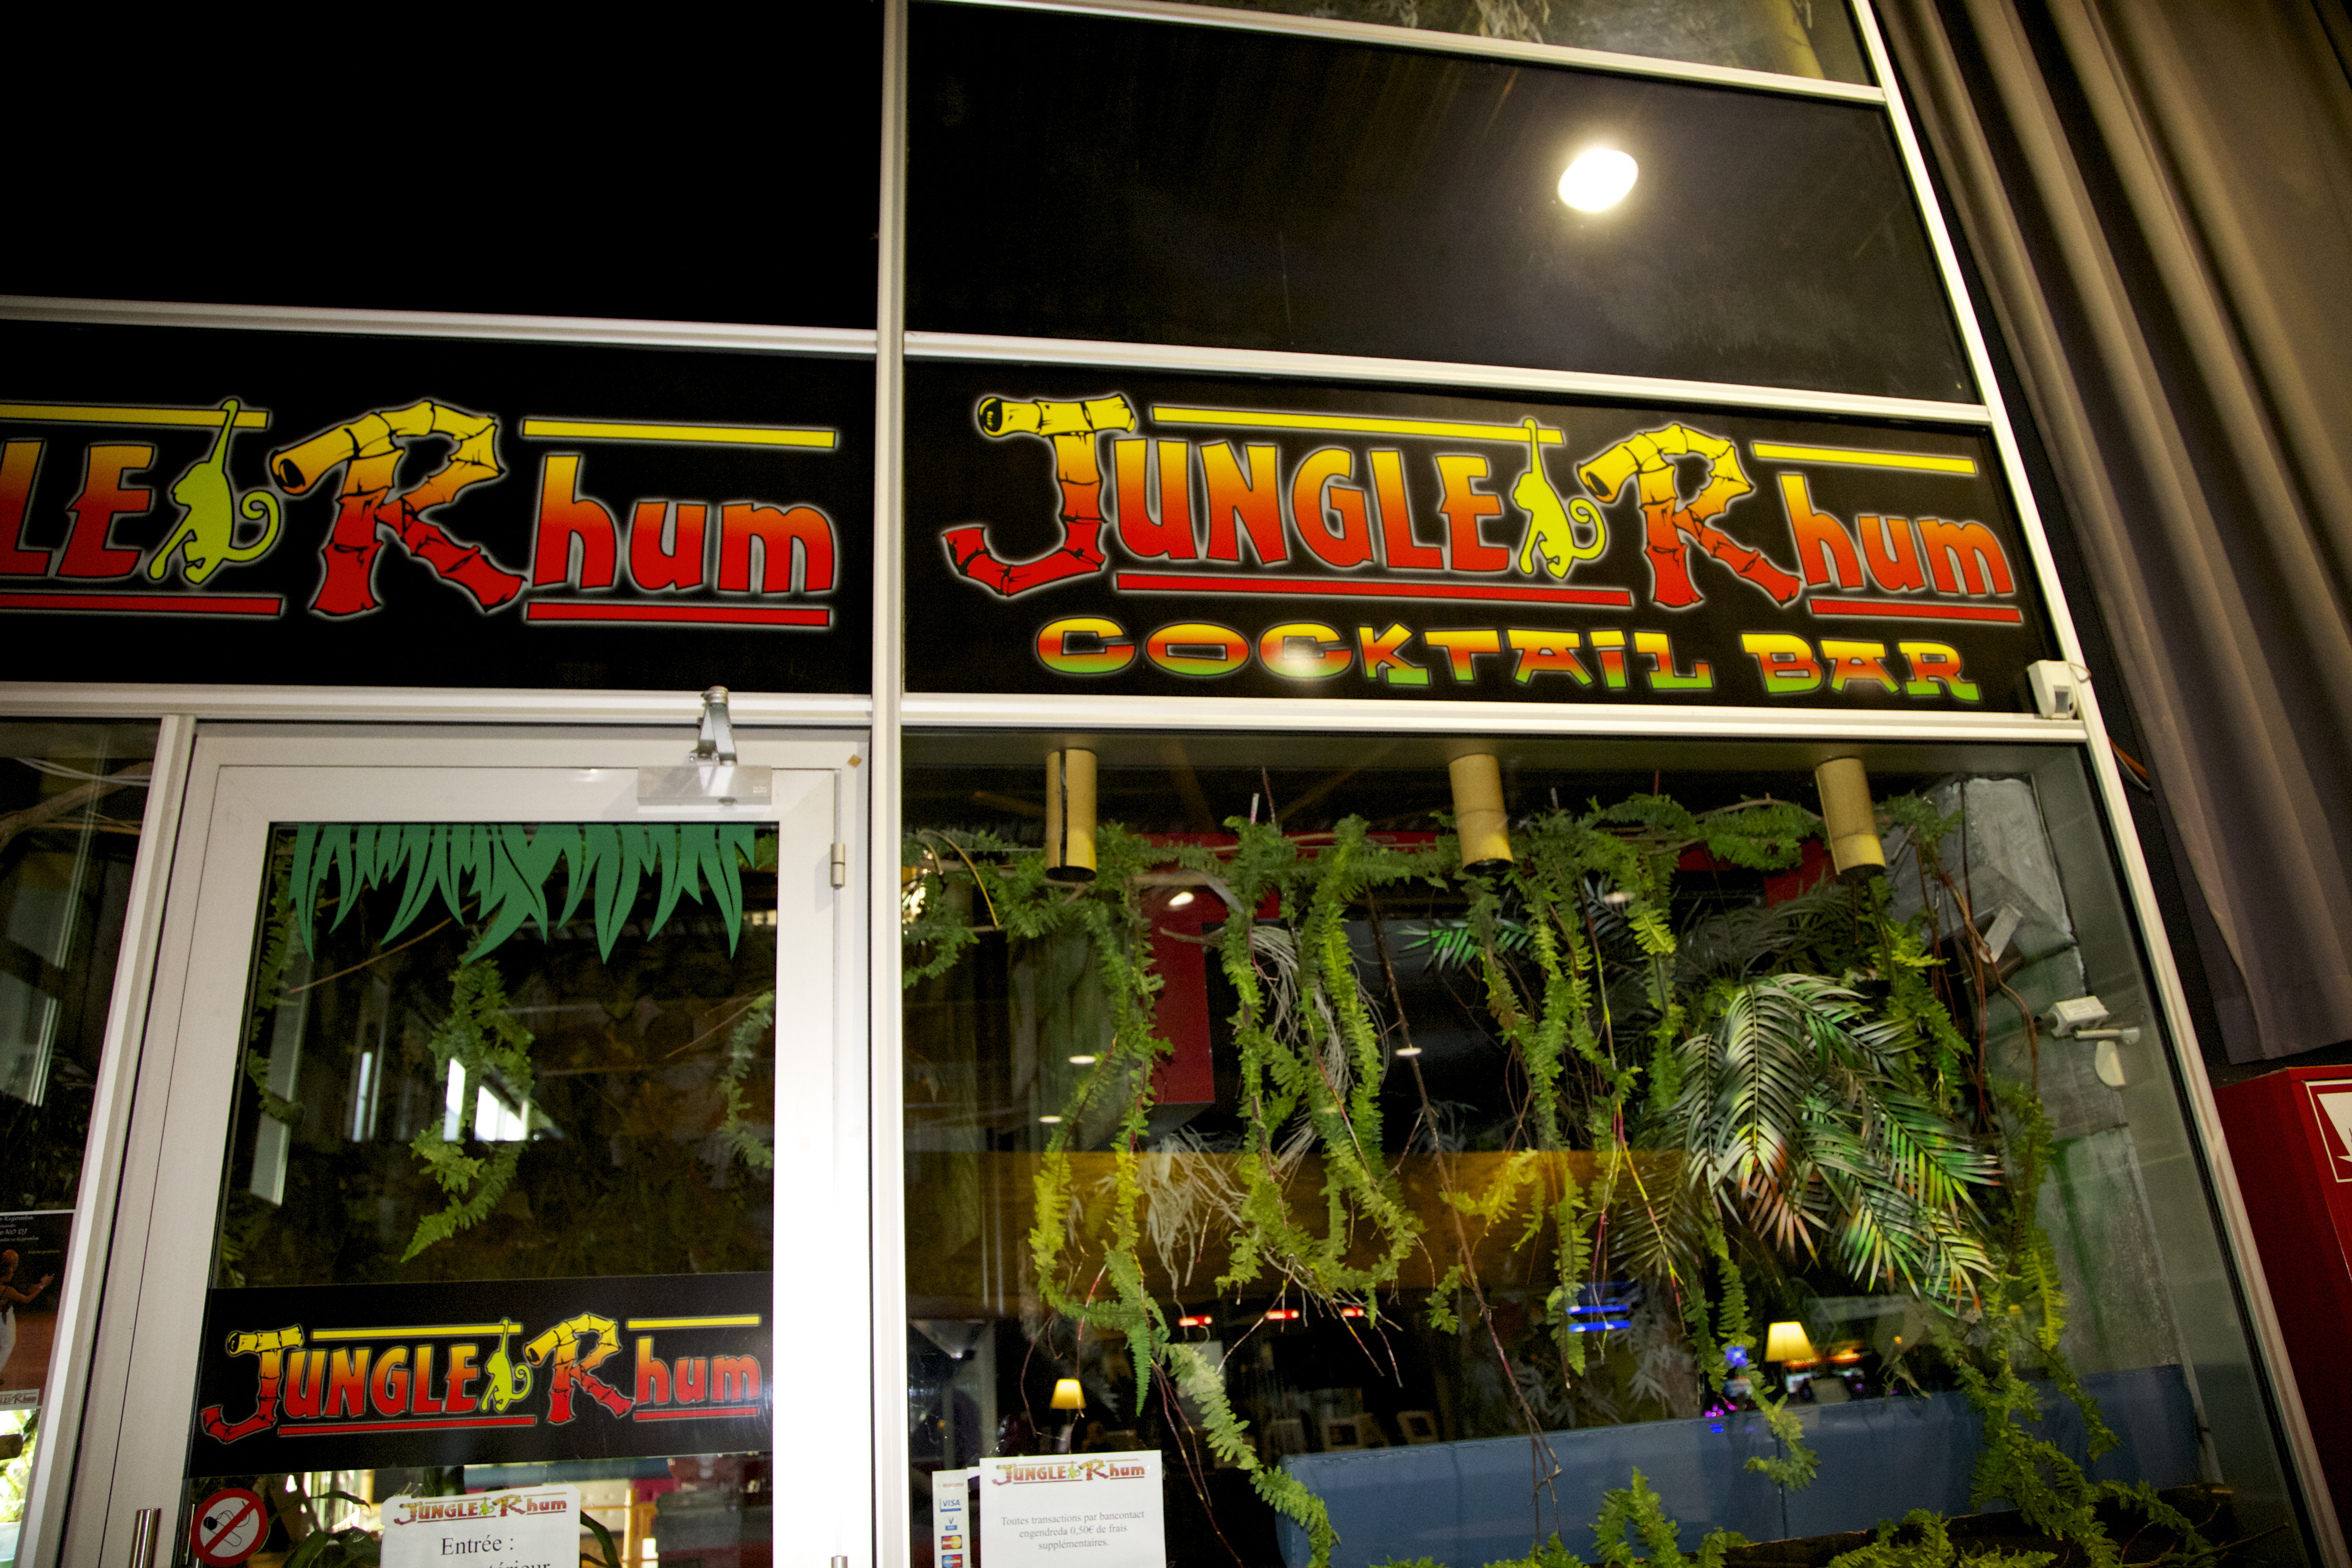 Jungle Rhum